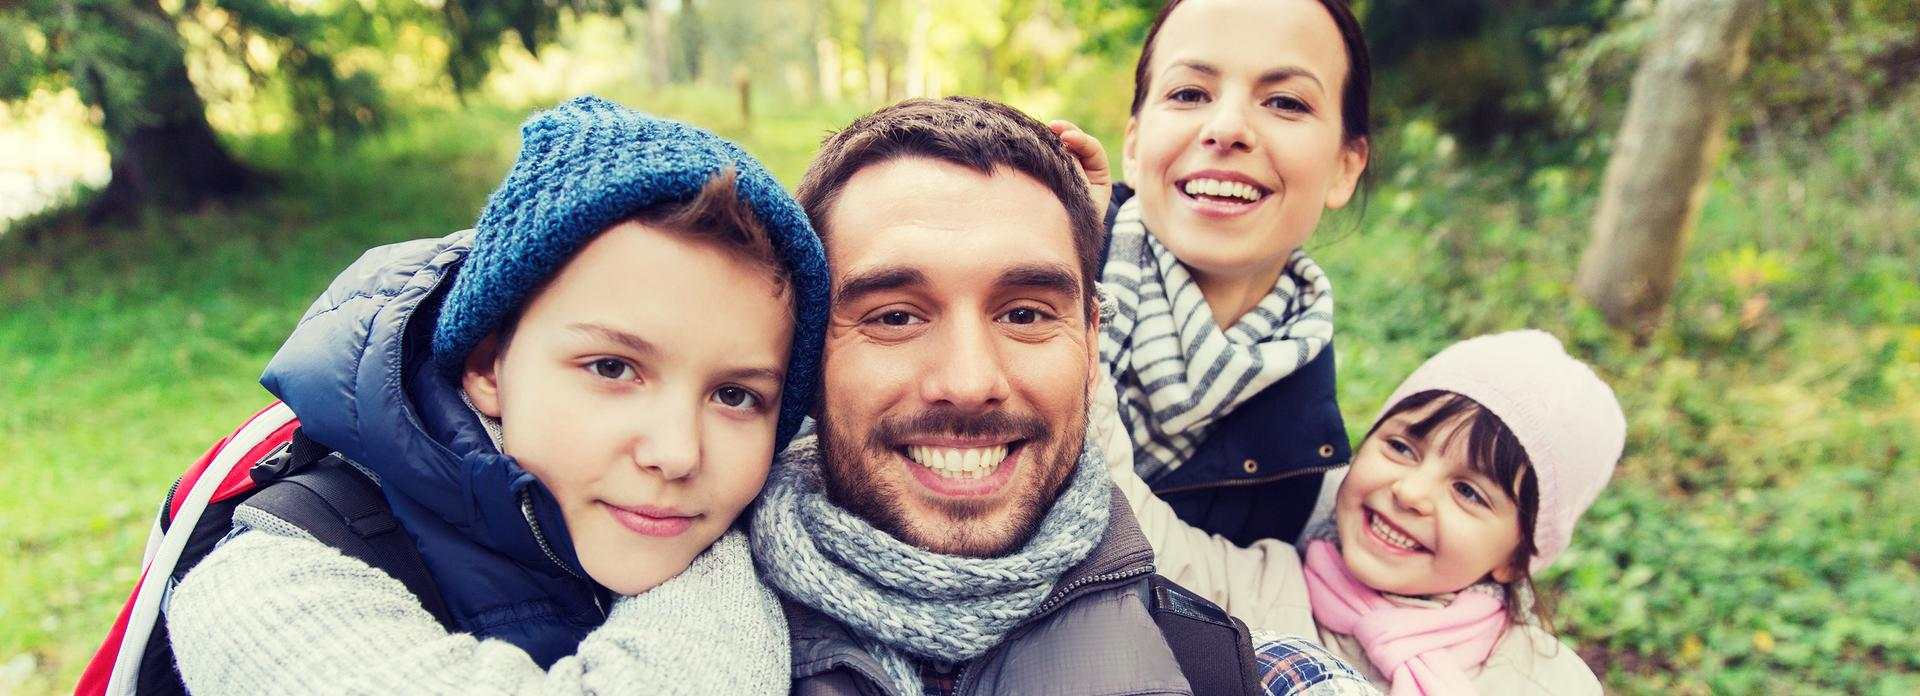 family-photo-outdoors-activities-cropped